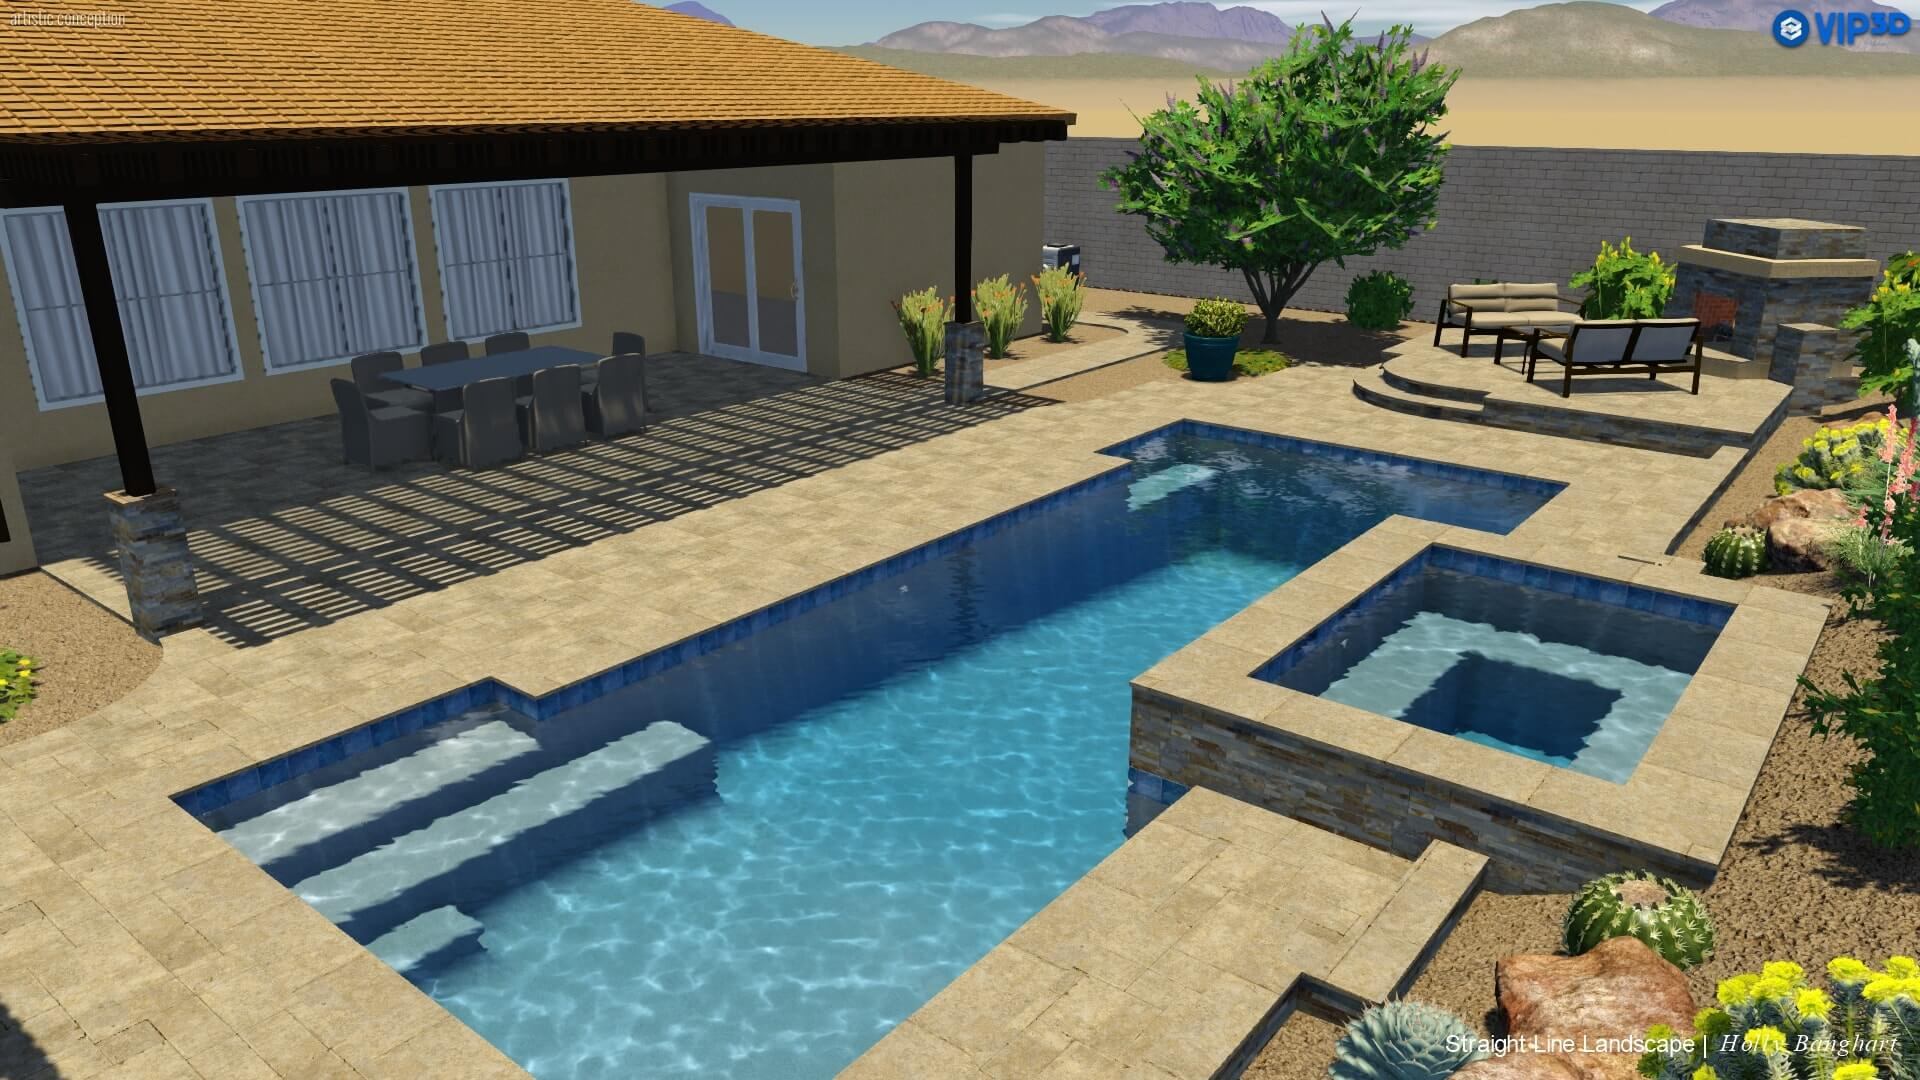 3 Pool Type Shape Ideas For Phoenix Az